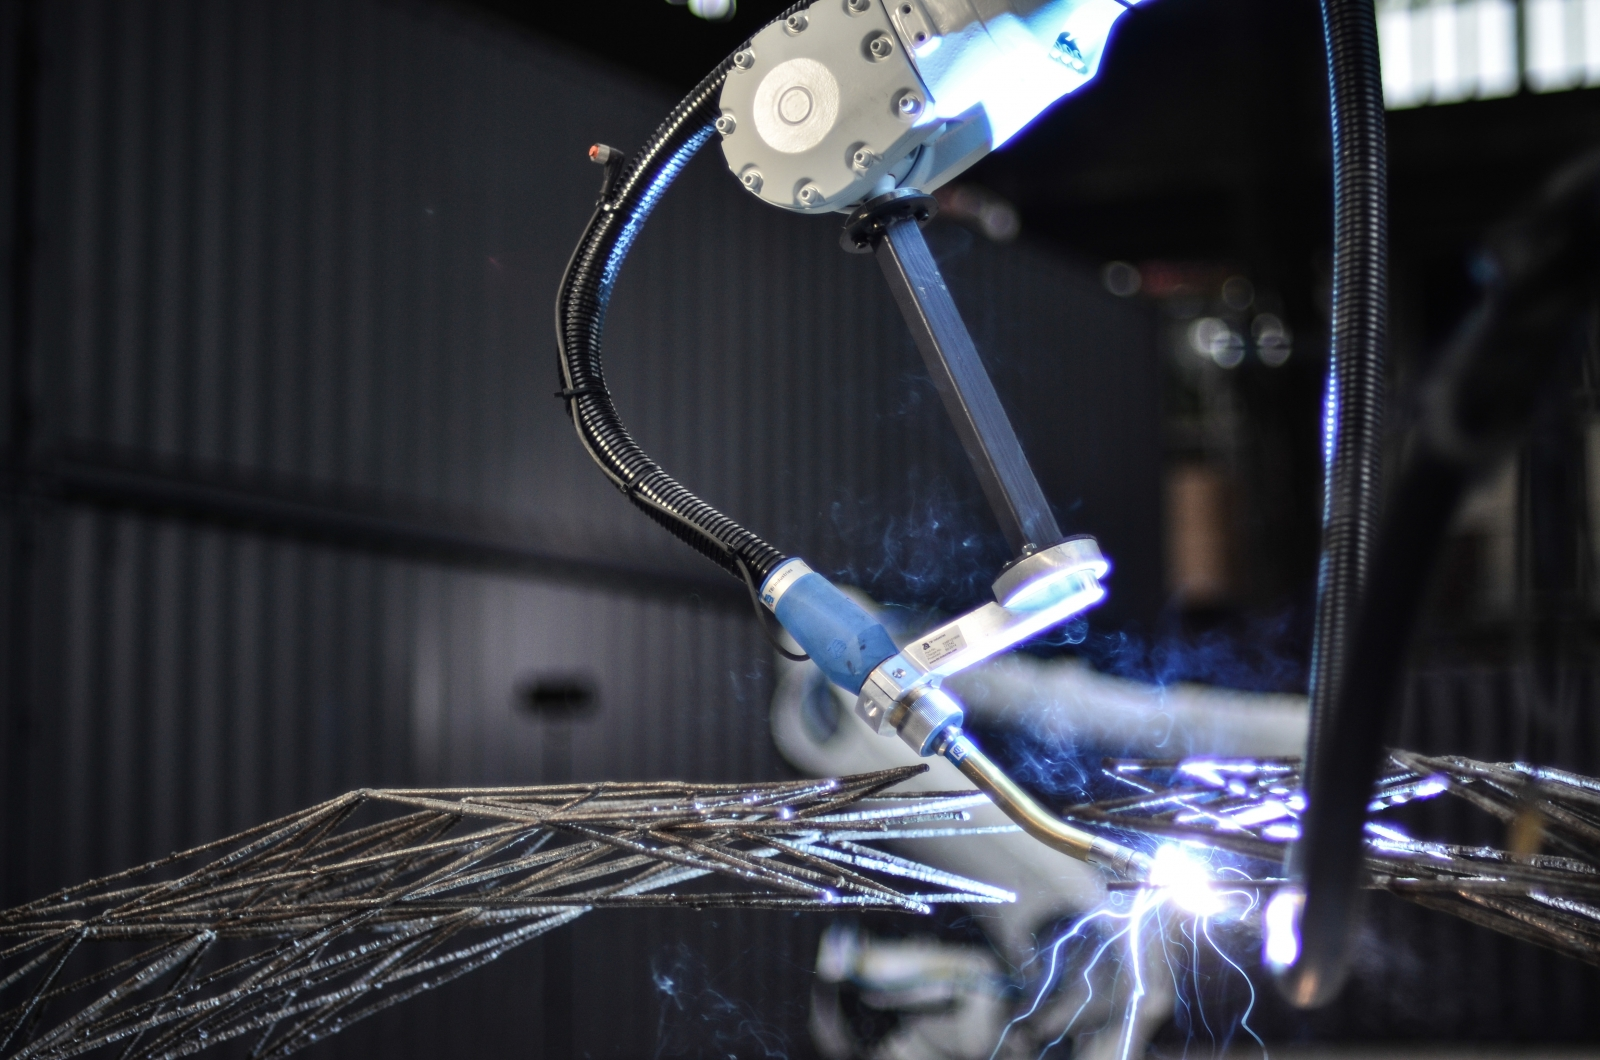 The robotic arm 3D prints and welds